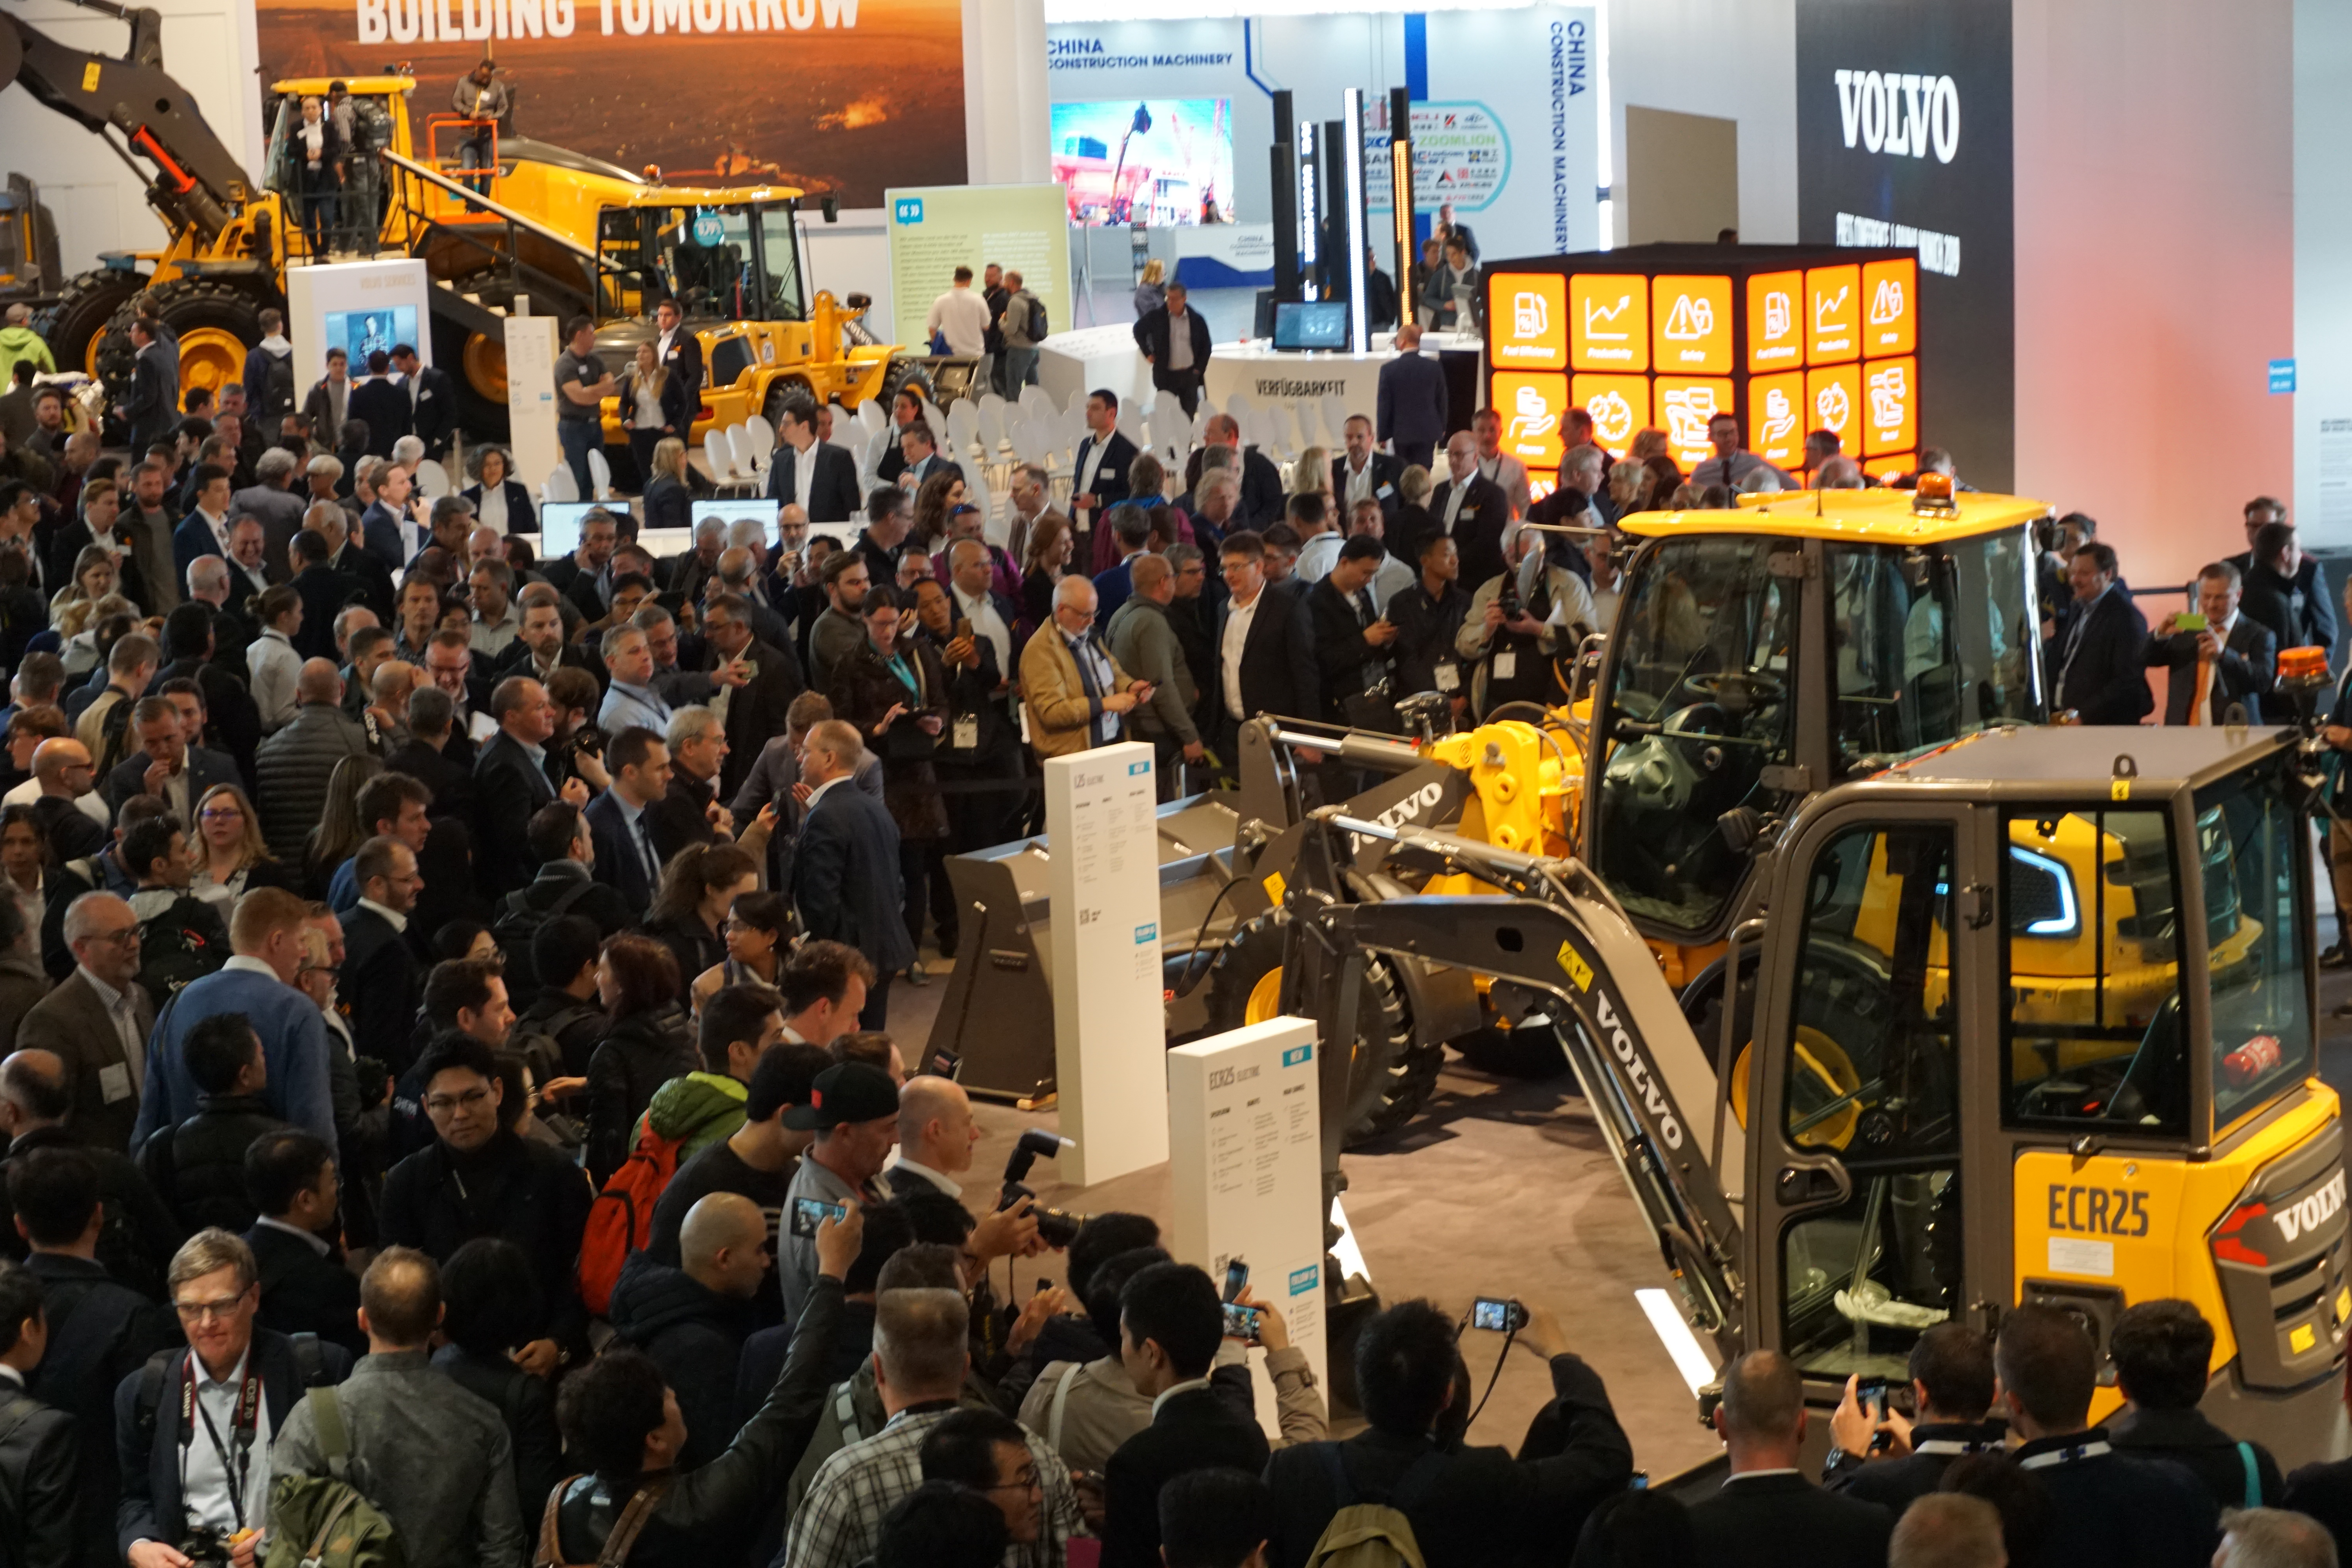 volvo booth at Bauma